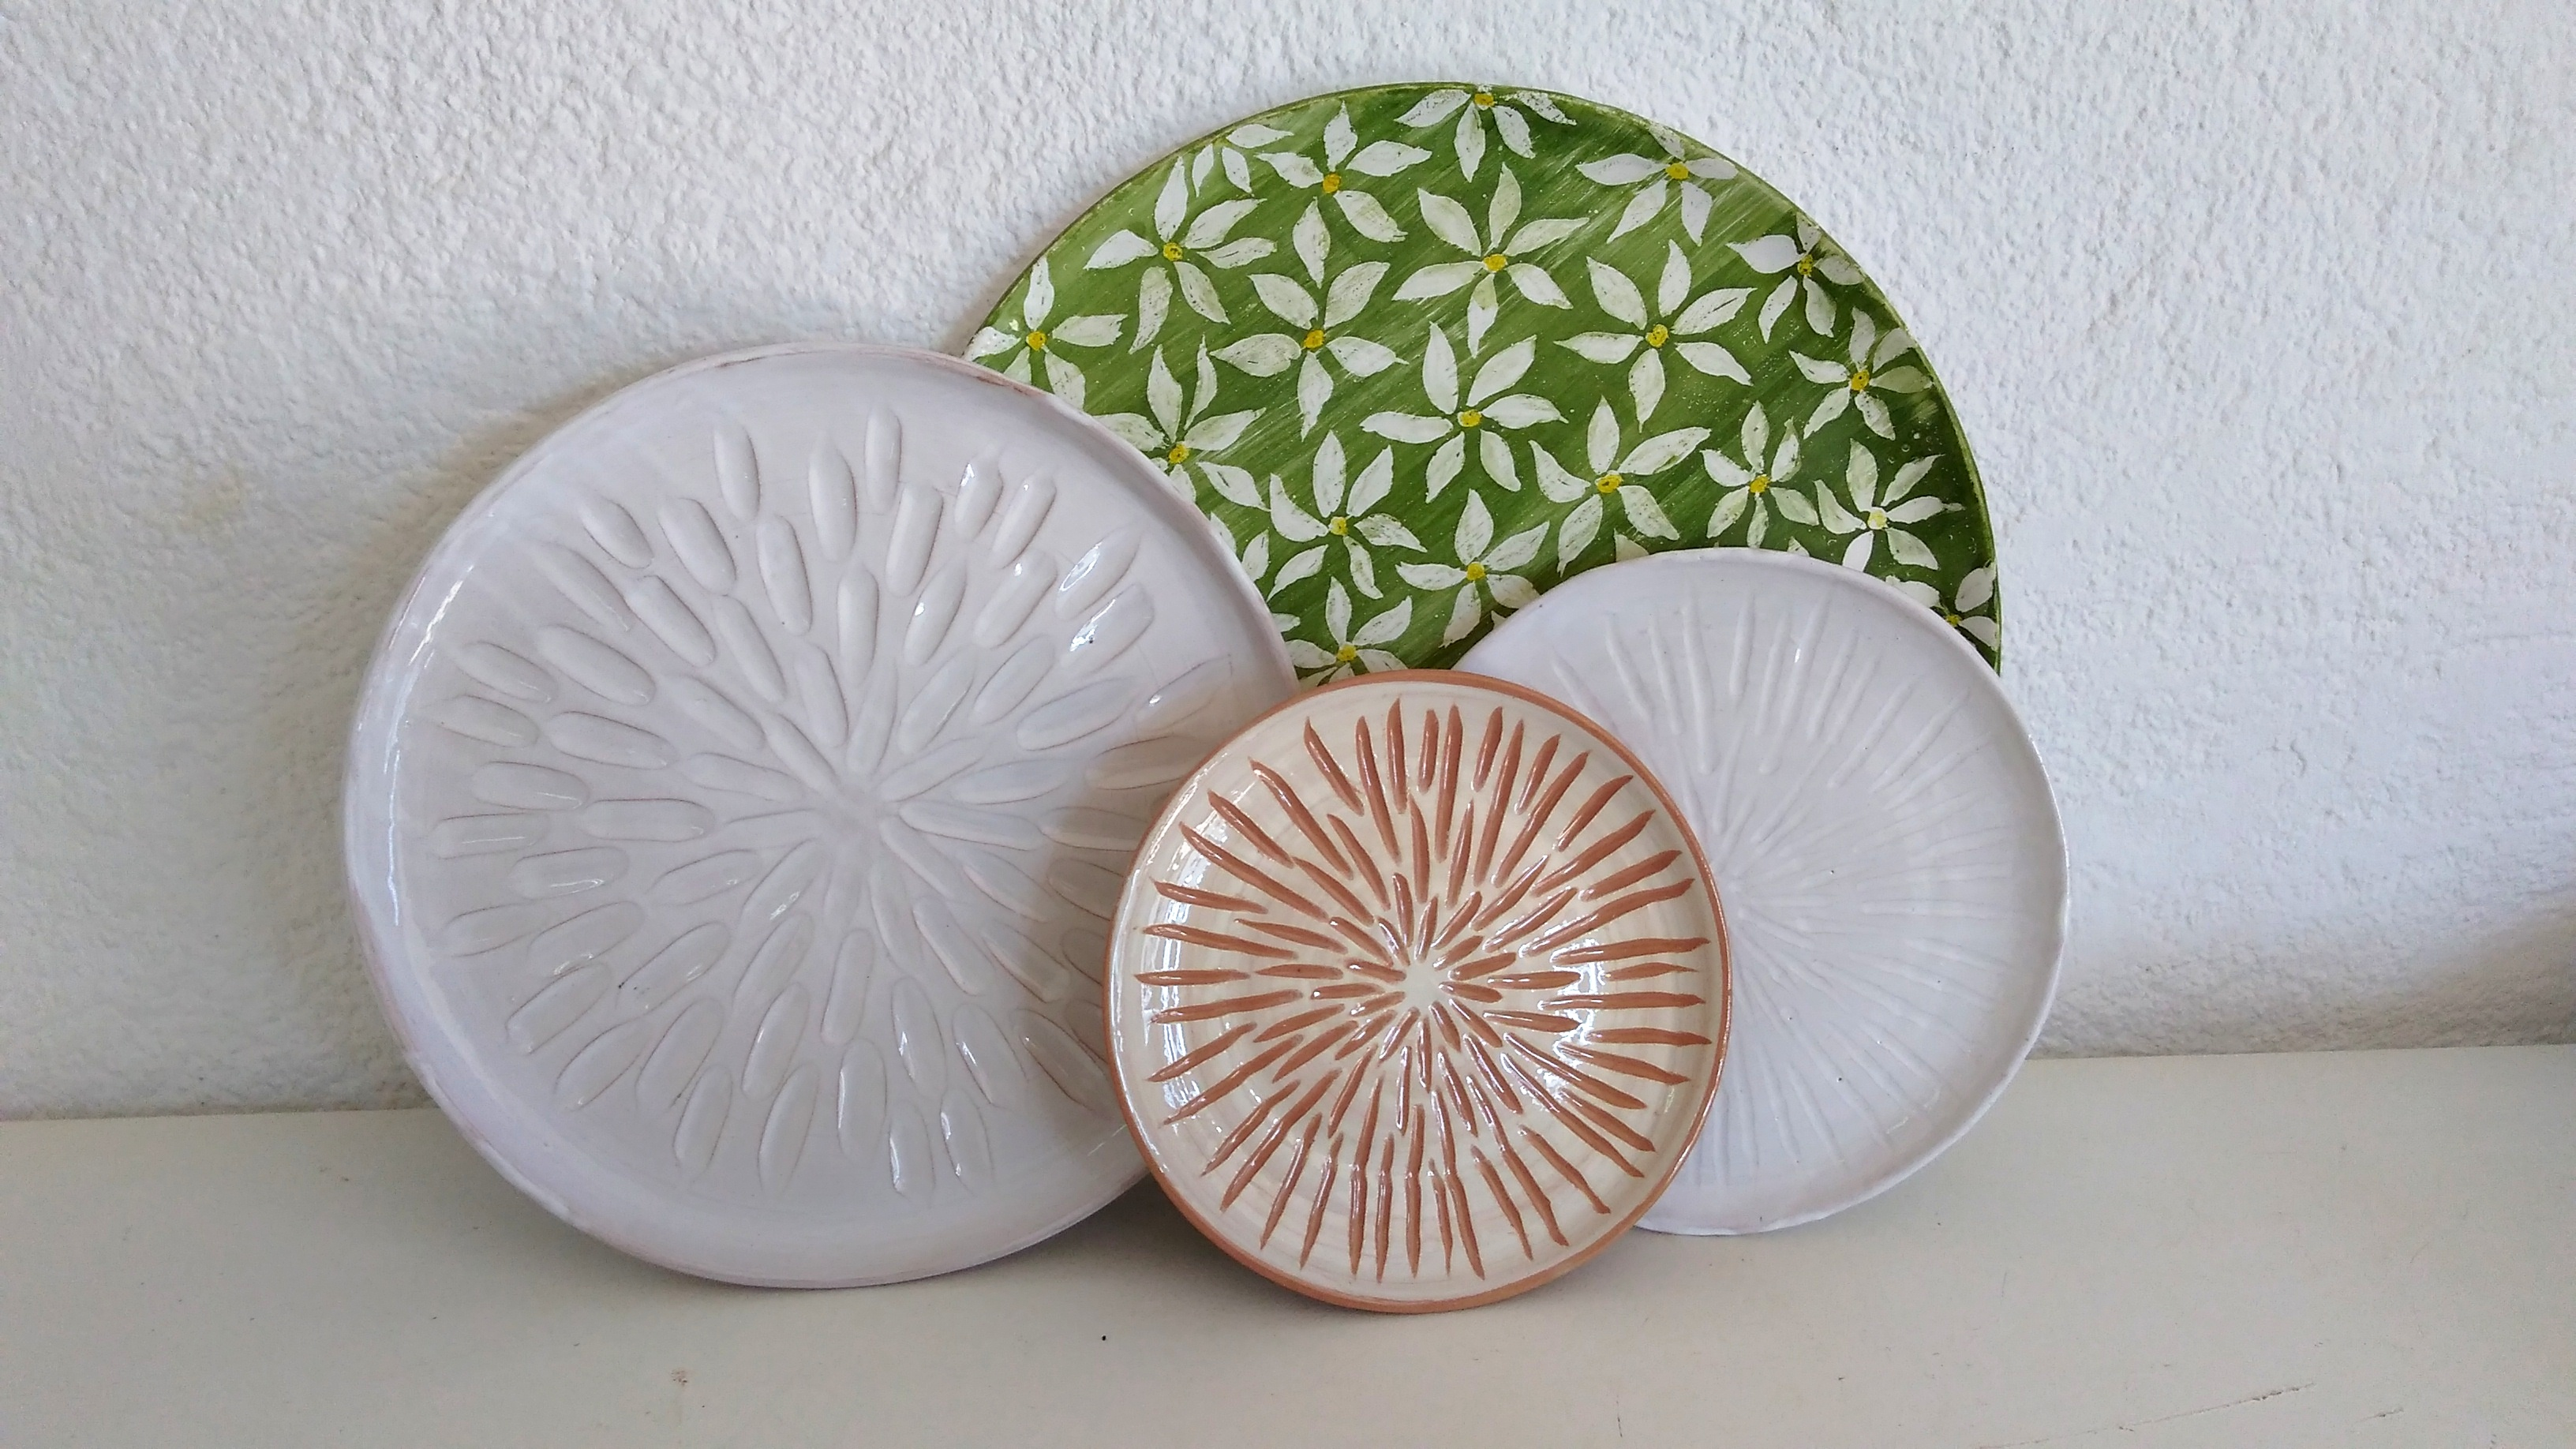 A selection of plates